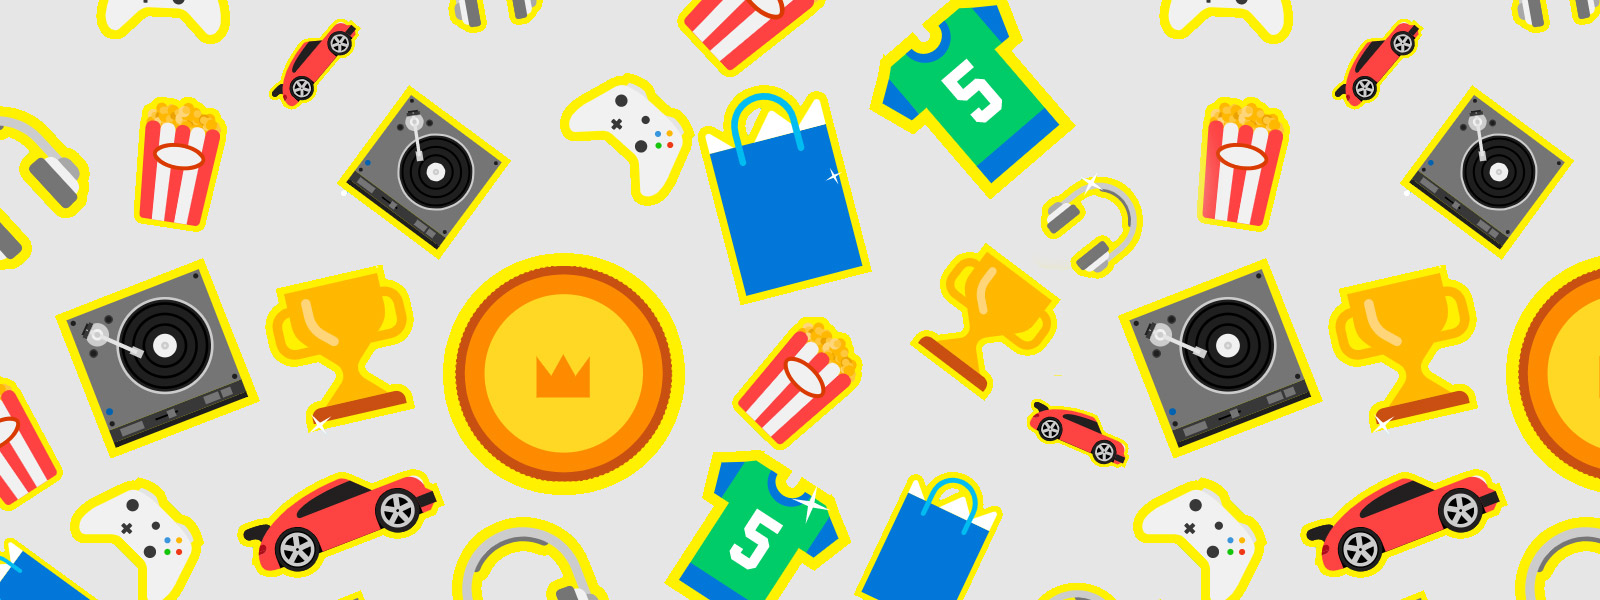 Various icons, including popcorn buckets, headphones, trophies, and cars.